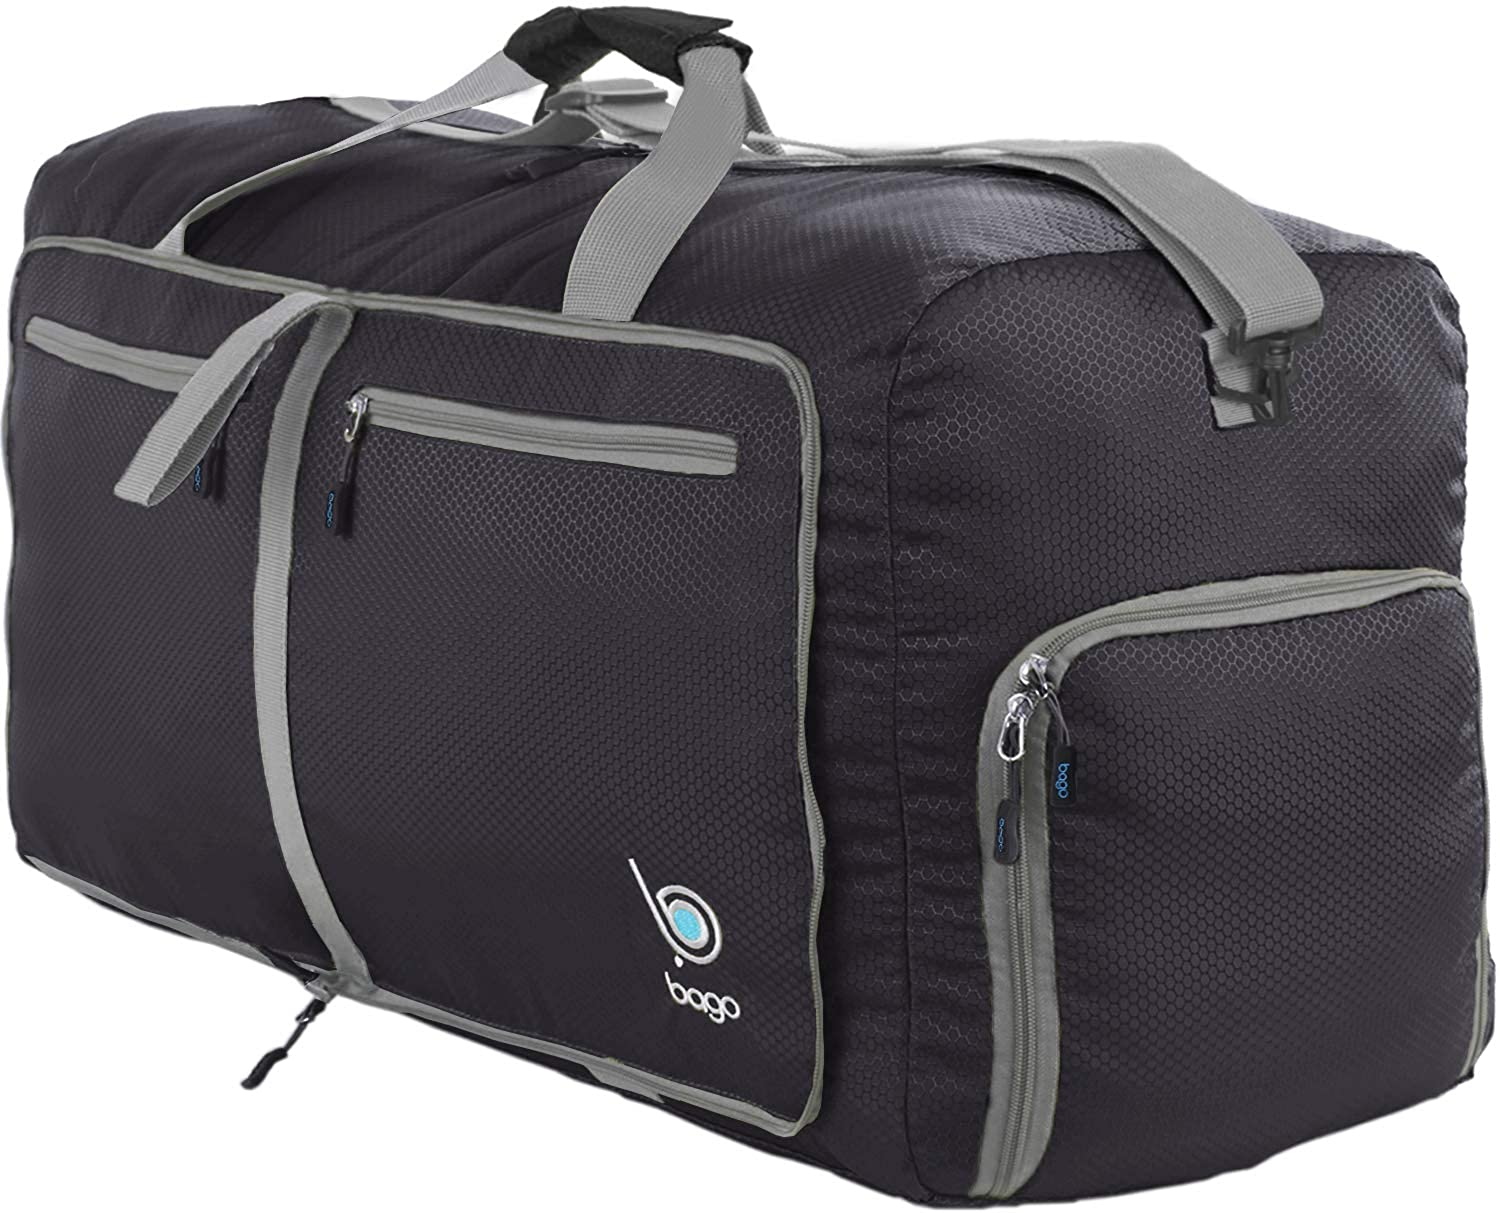 a3996b2c6cf6 Bago 80L Duffle Bag for Women & Men - 27